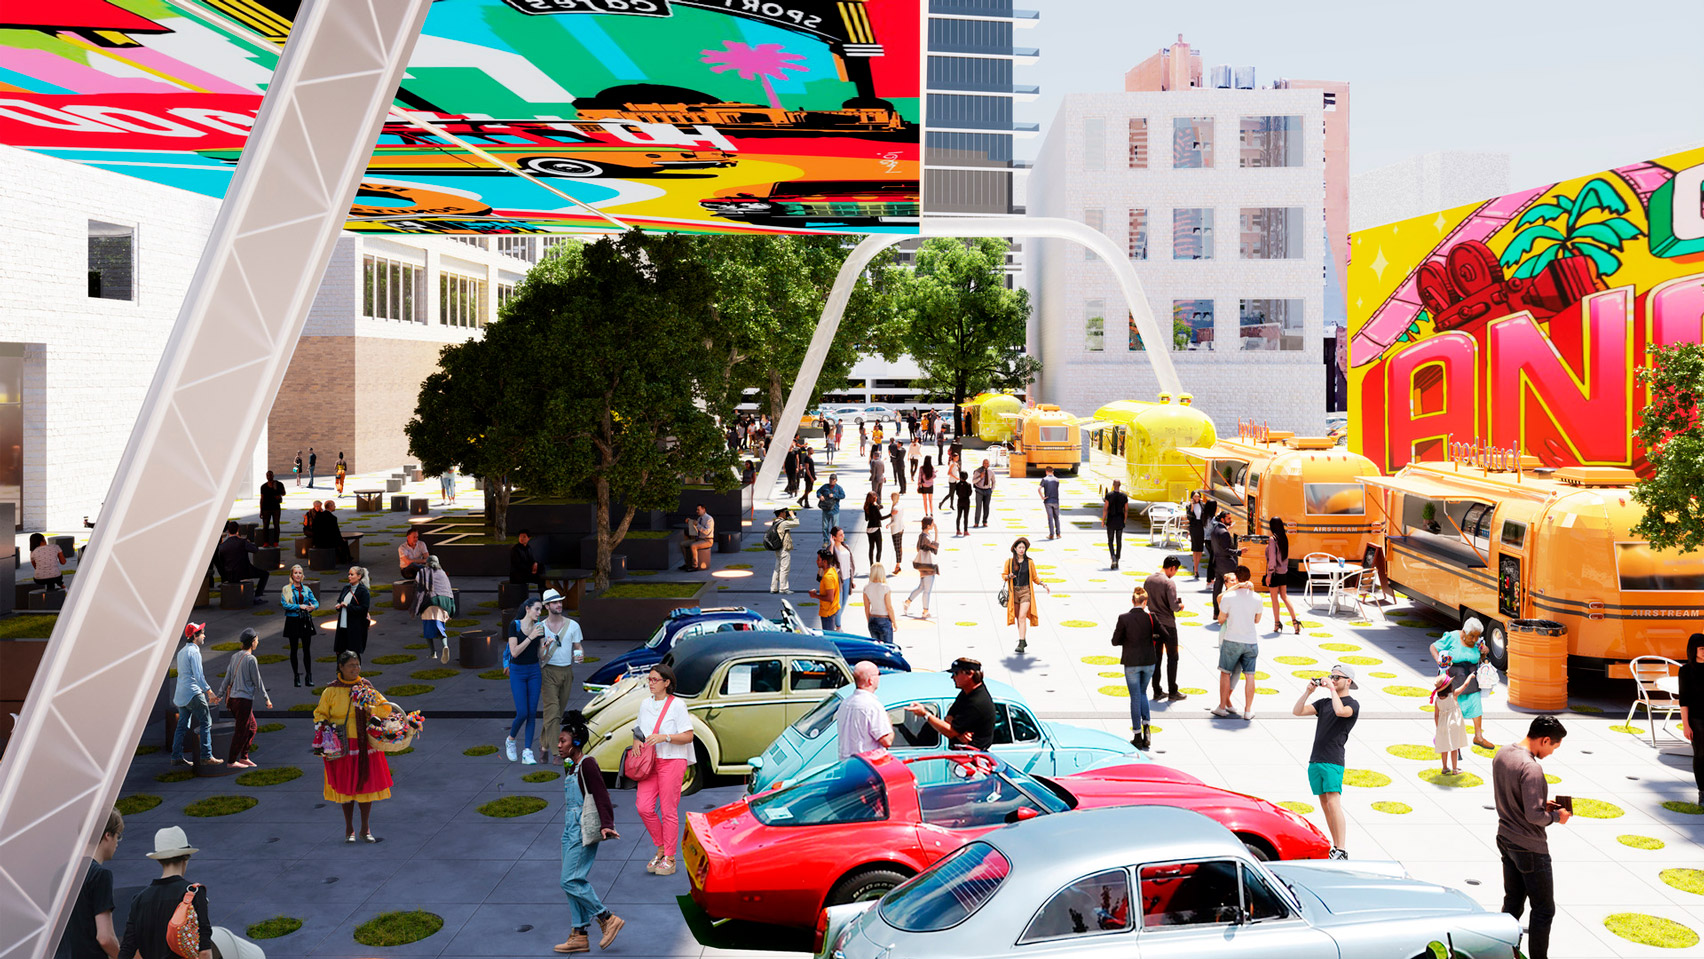 Woods Bagot Imagines Electric Vehicle Charging Stations as Drive-In Cinemas